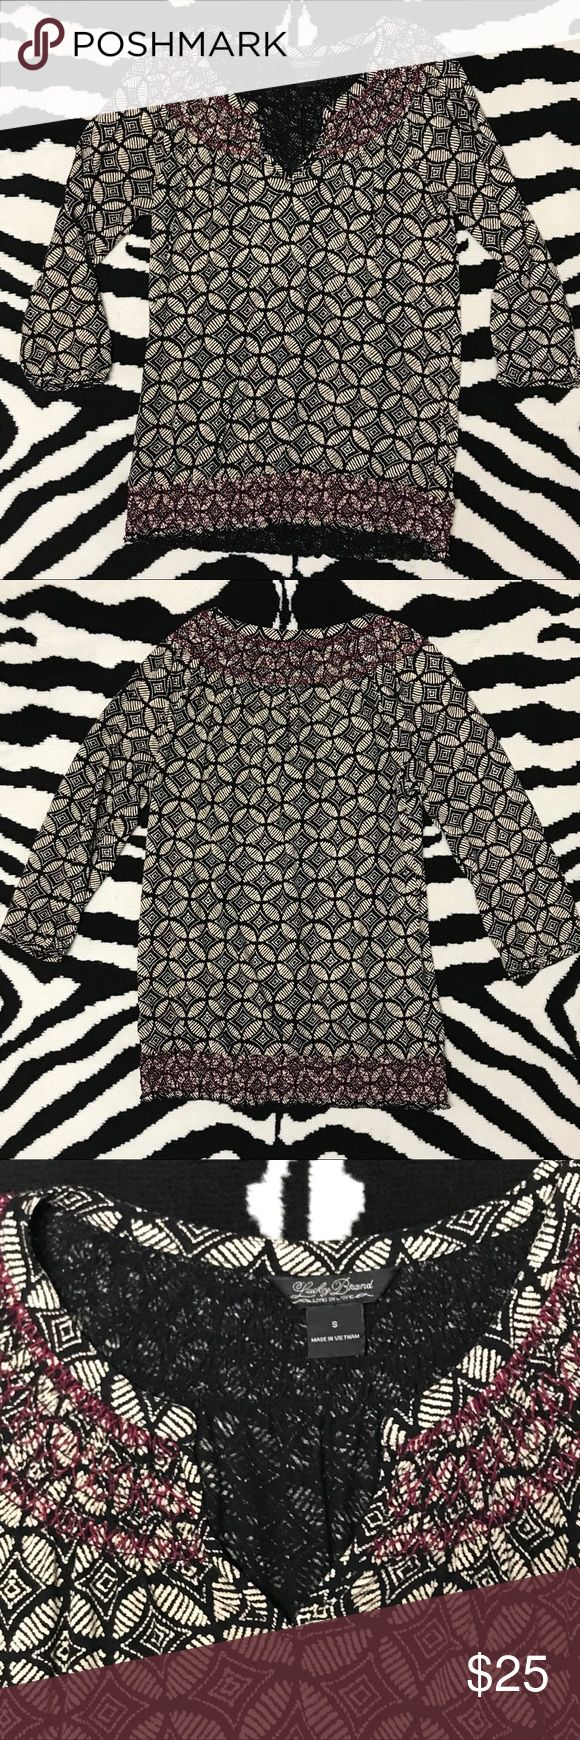 """Lucky Brand Printed Blouse Lucky Brand Printed Blouse. Three quarter length sleeves, V-neck style blouse with smocking detail on neckline and waistband. Colors: Black/Burgundy and Tanish/Cream. Chest measures: 17.5"""" flat length 26"""" Lucky Brand Tops Blouses"""